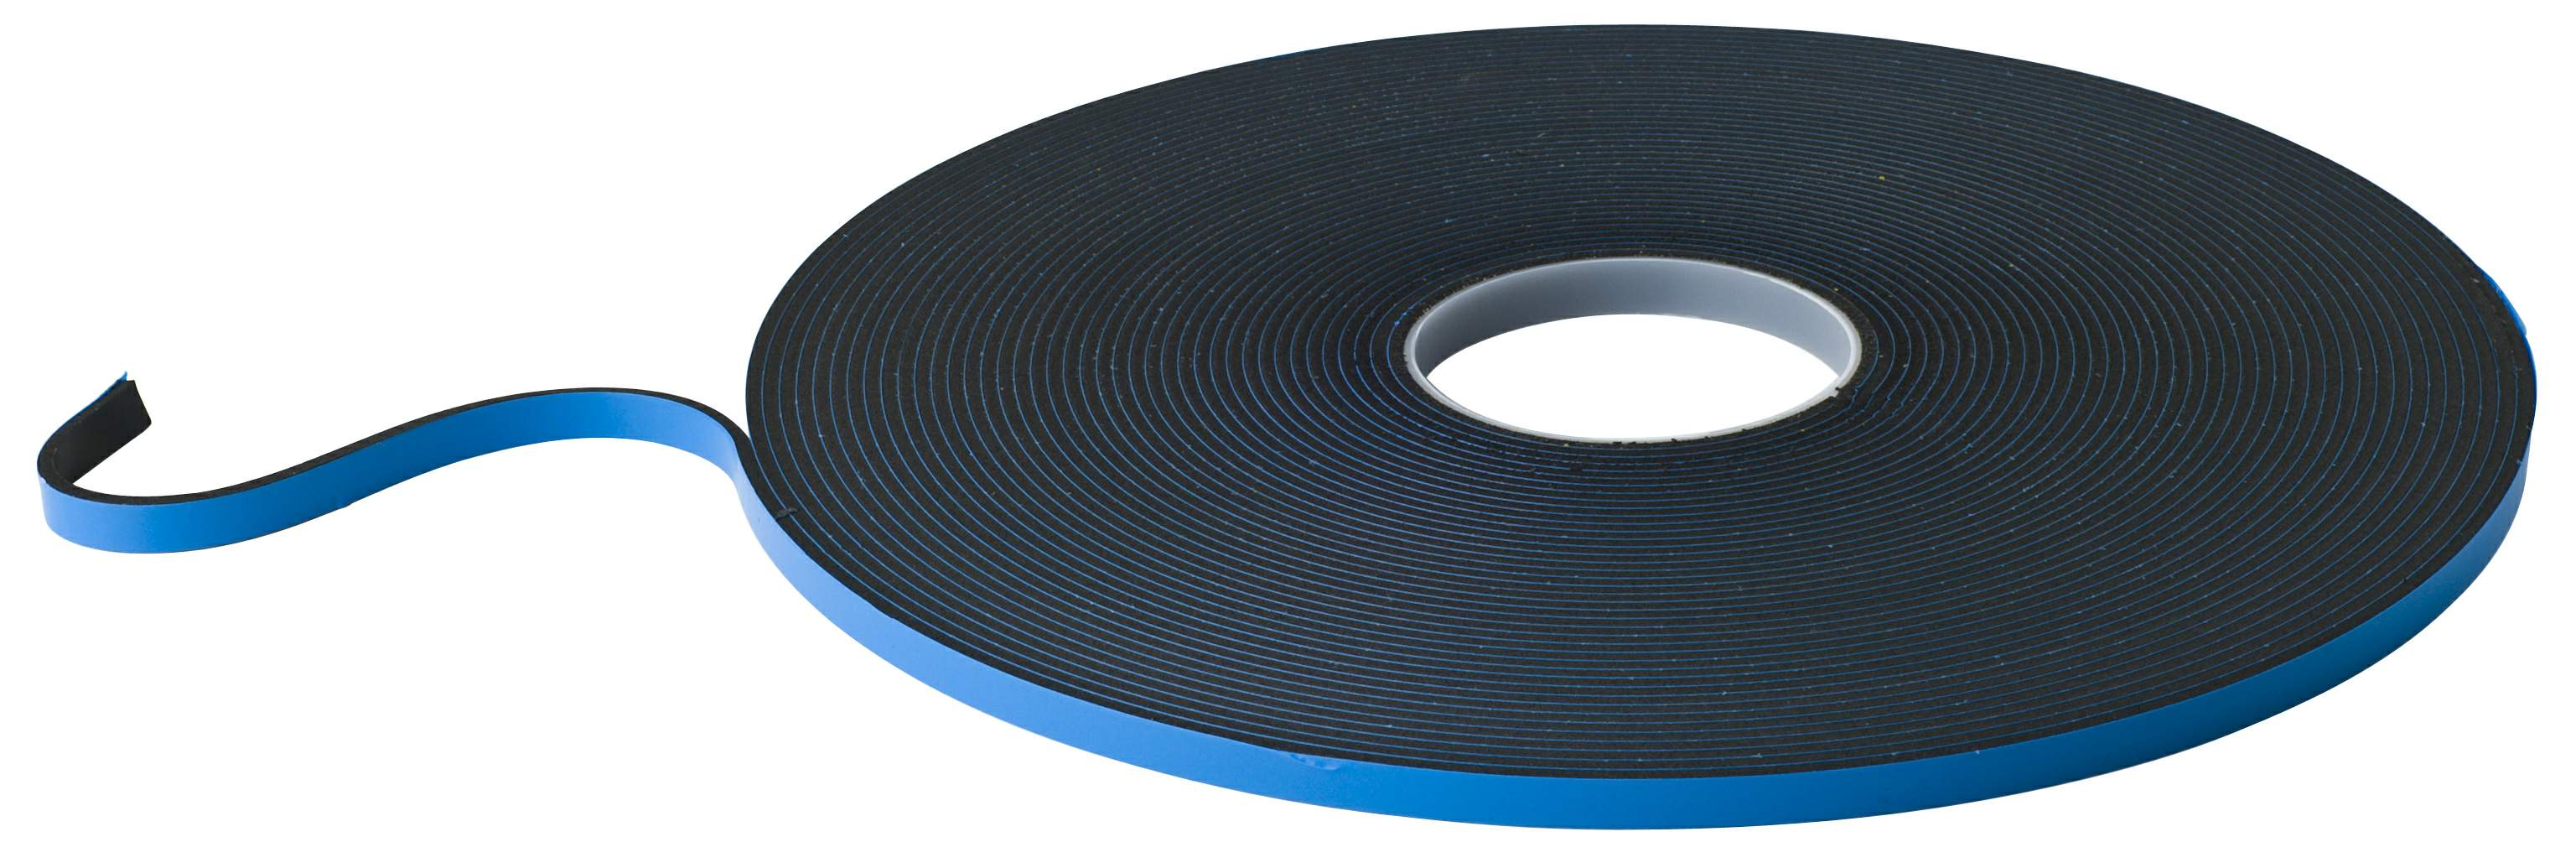 Thumbnail - Foam Tape D/S Structural 9.5mm X 9mm X 7.6M